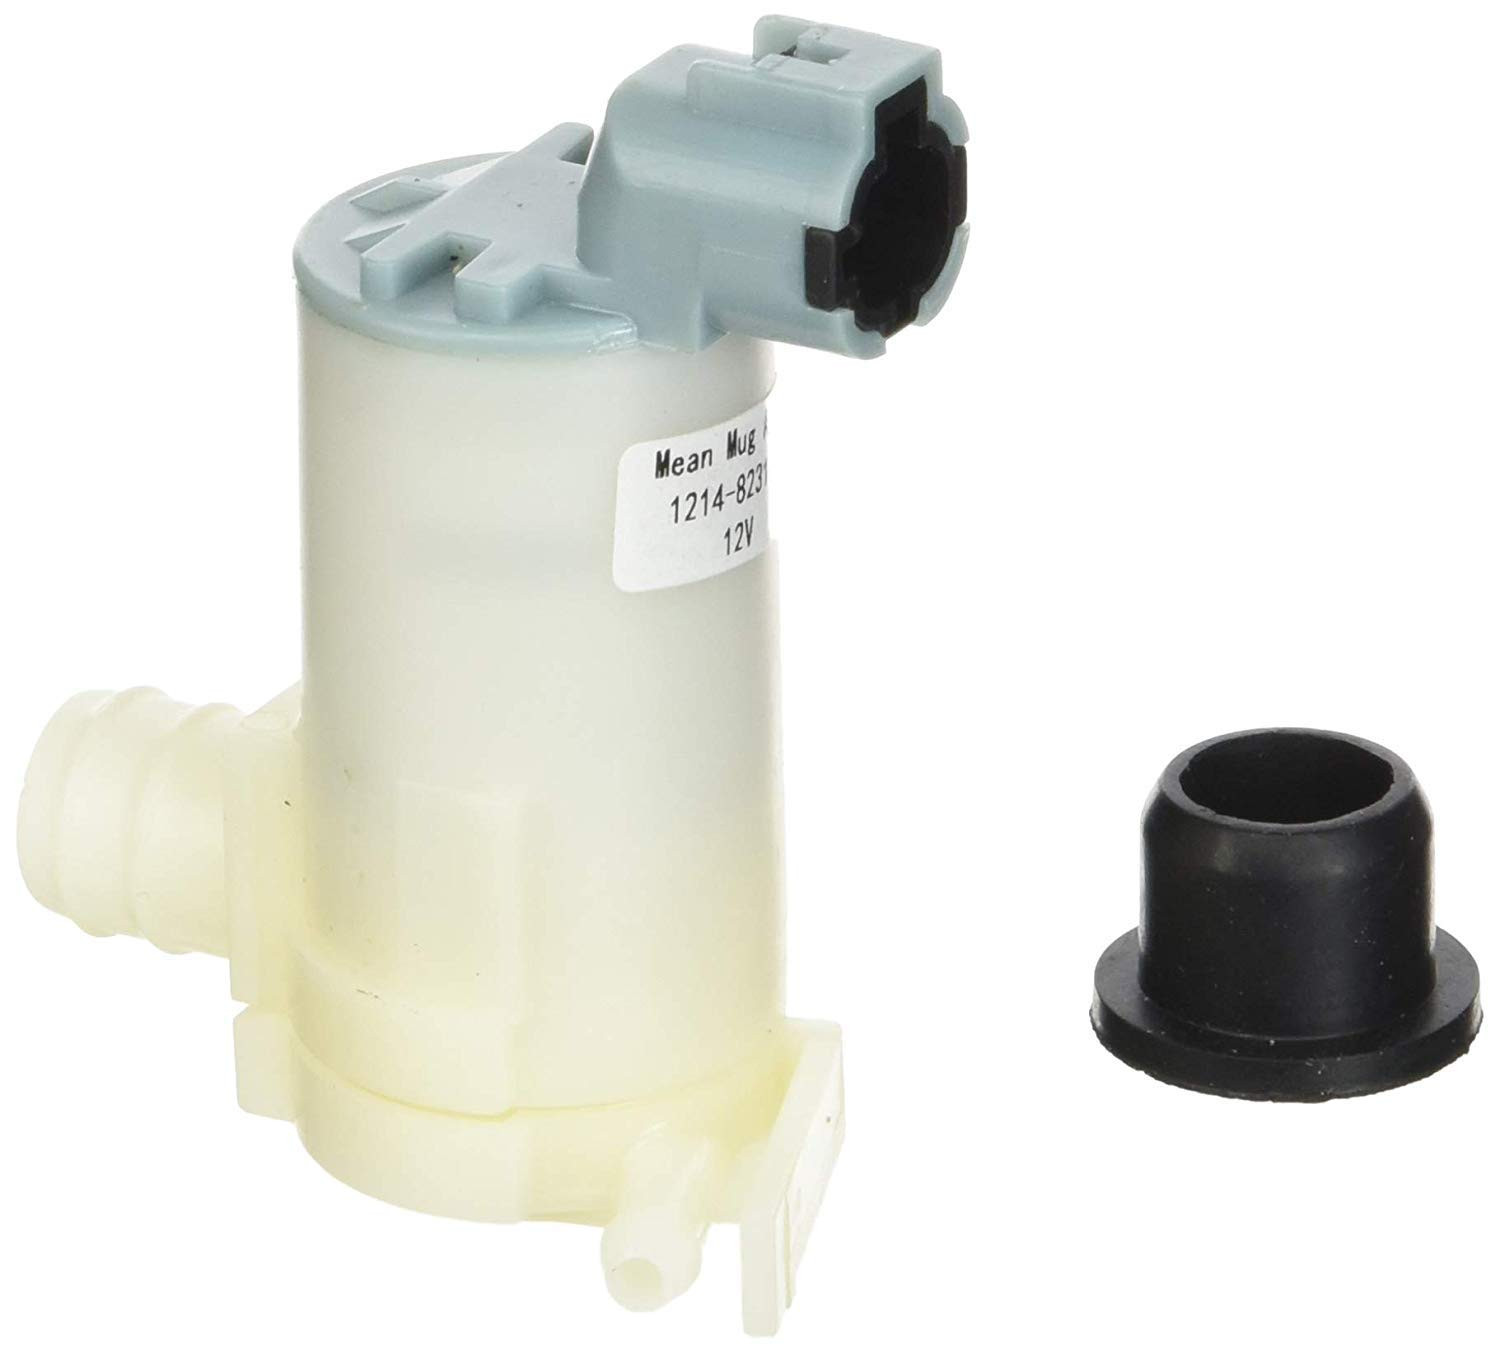 Mean Mug Auto 14919-232316A Windshield Washer Pump w/Grommet - Compatible with Nissan, Infiniti - Replaces OEM #: 289203Z000, 2224620-A, 2224643-A, 6731